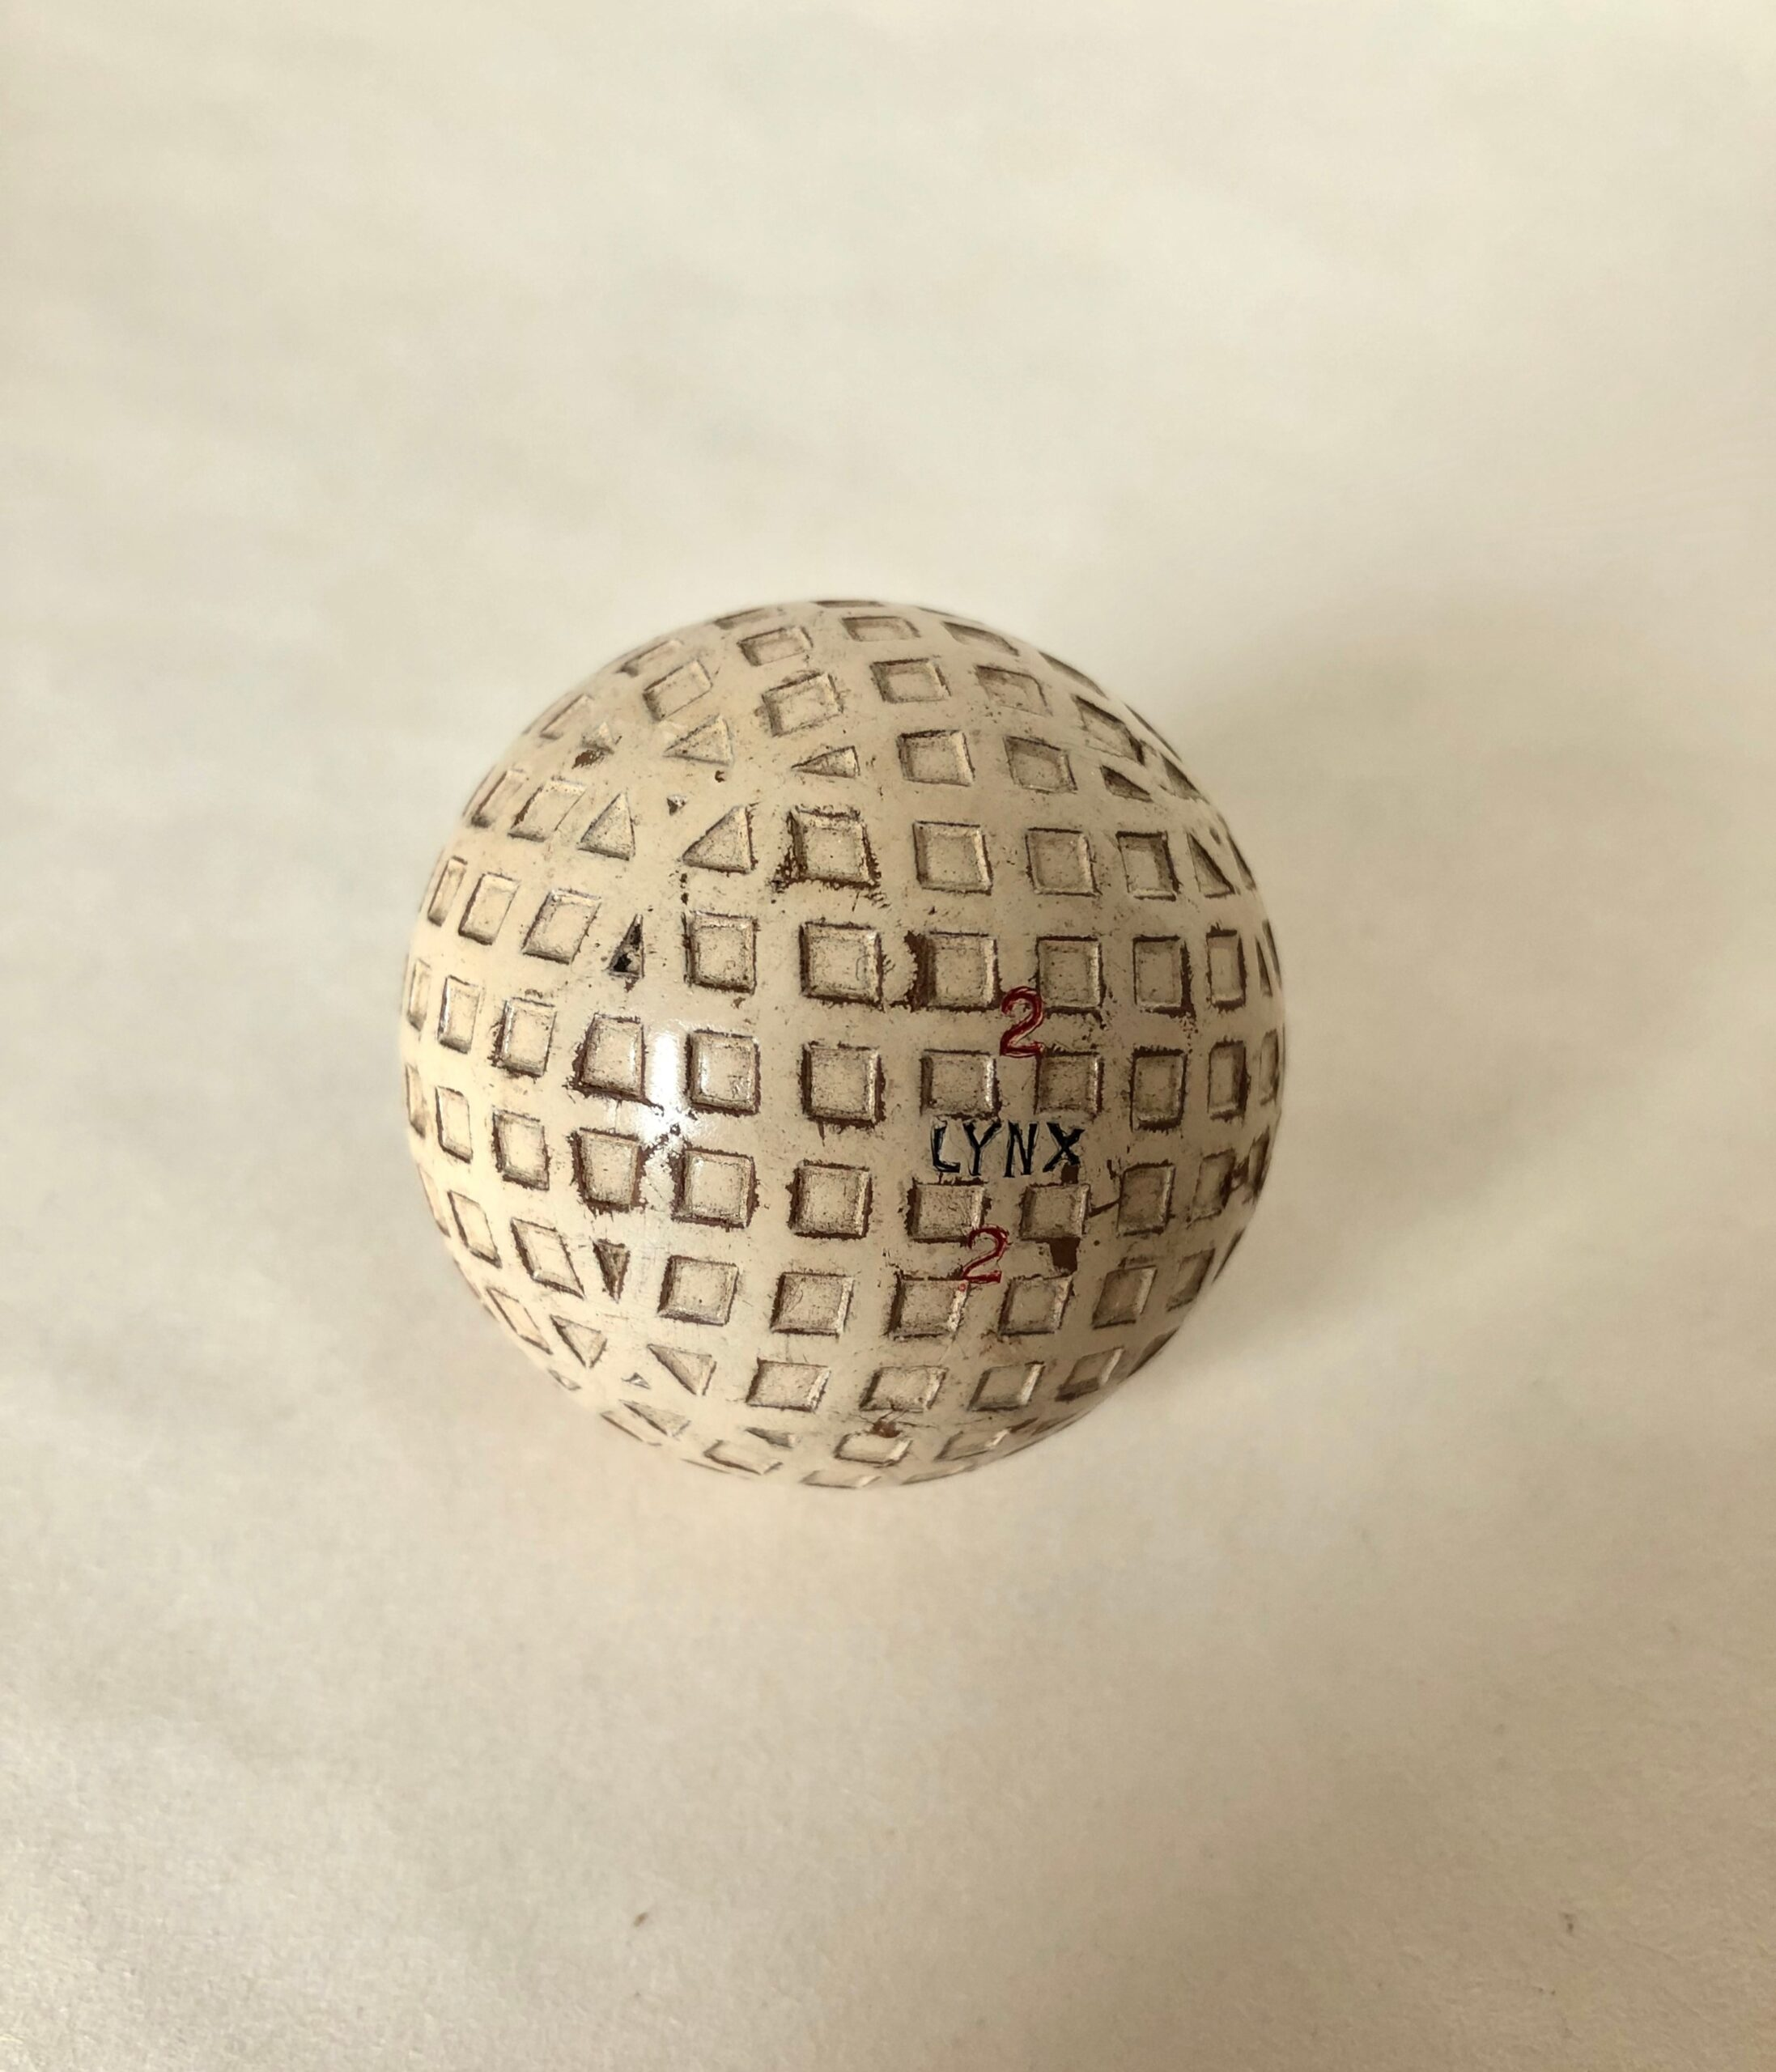 Silvertown 'Lynx' Golf Ball